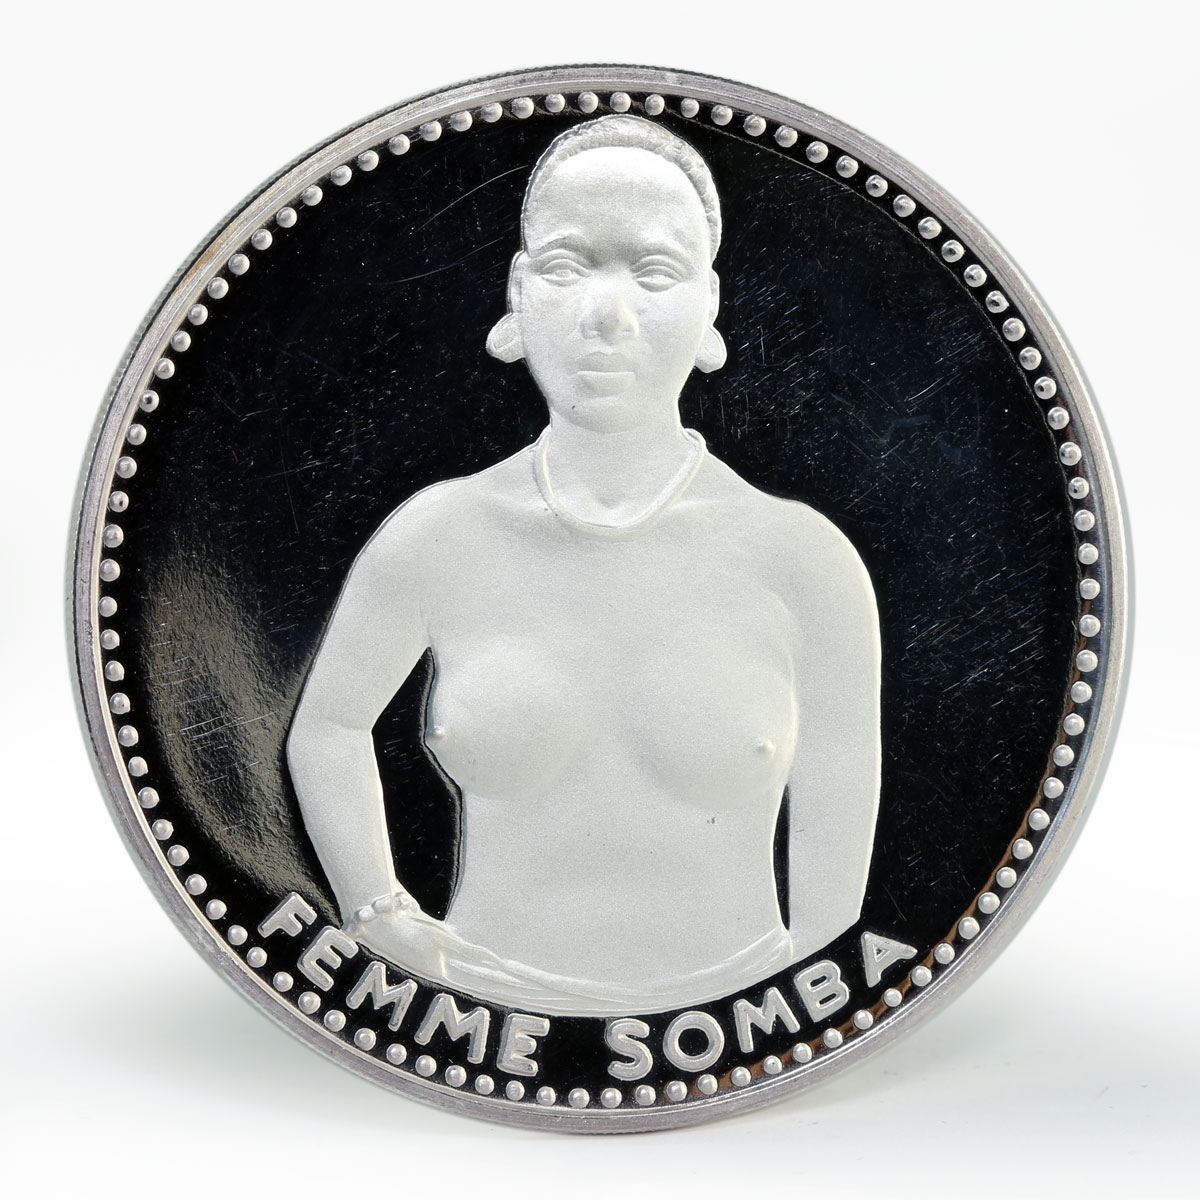 Dahomey 1000 francs 10th of Independence Somba Woman silver coin 1971